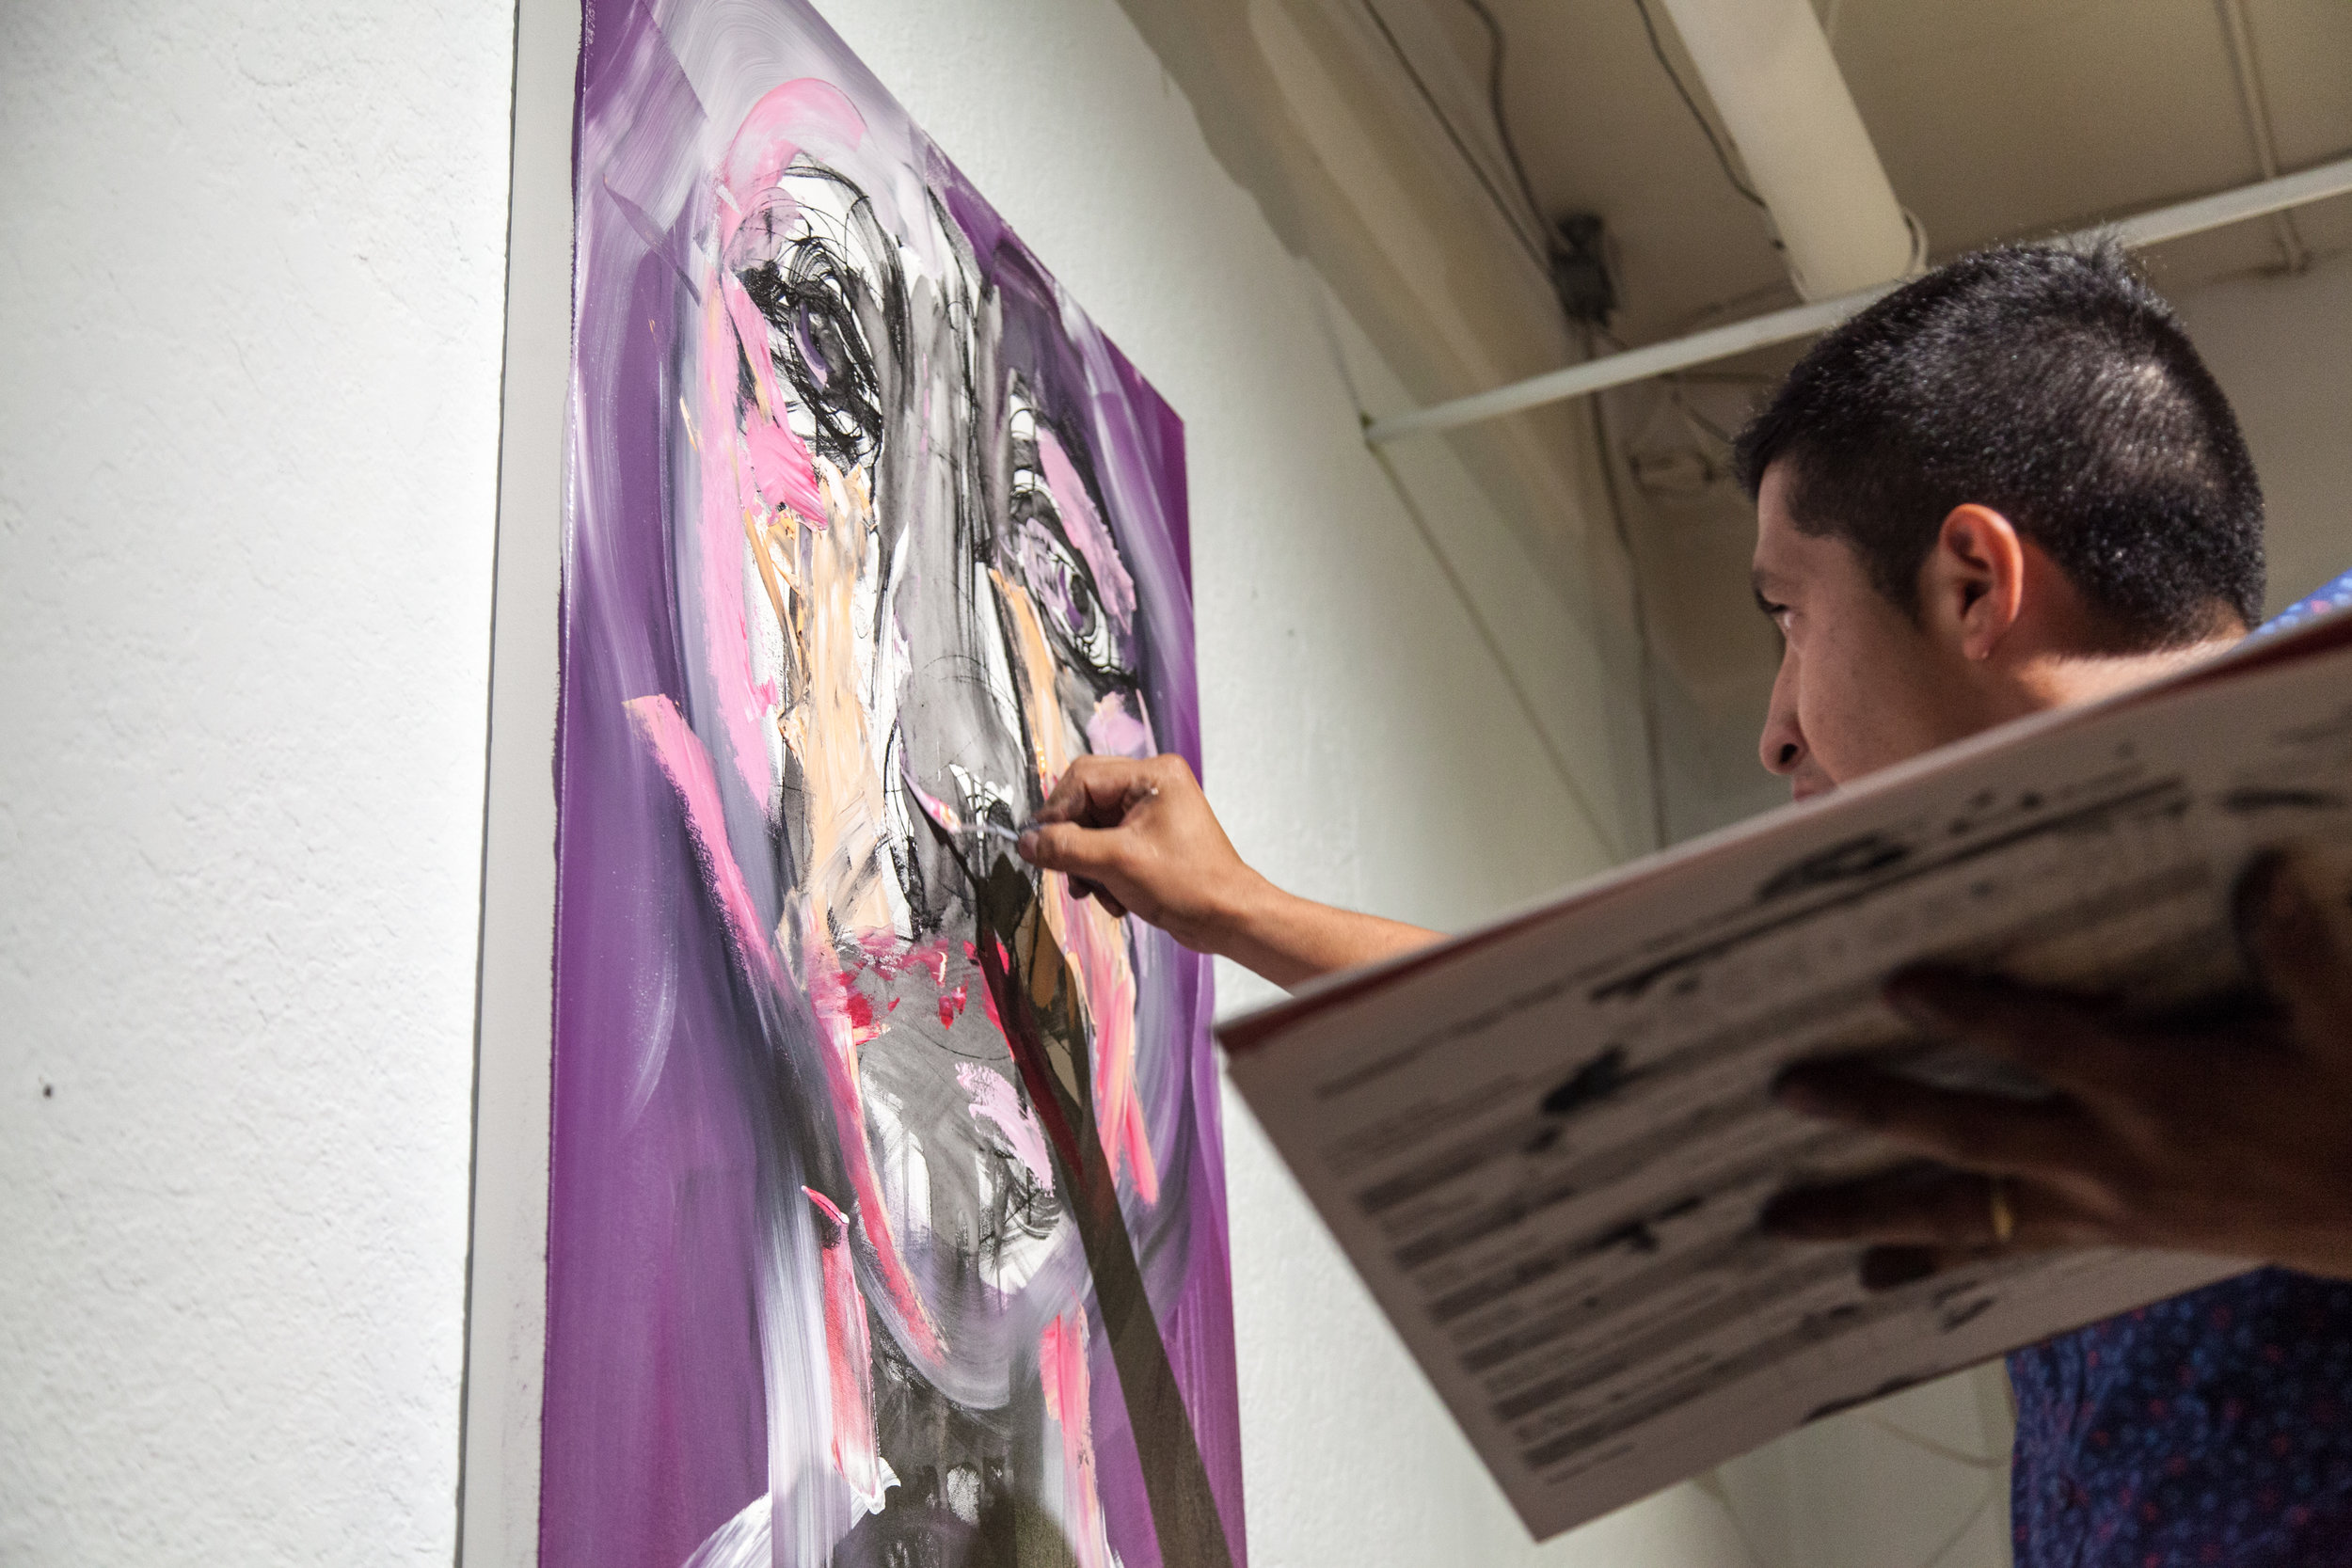 Live art painting at art show of abstract portraits by Colombian born, Toronto based artist Carlos Delgado in downtown Toronto at Orchid Signs.